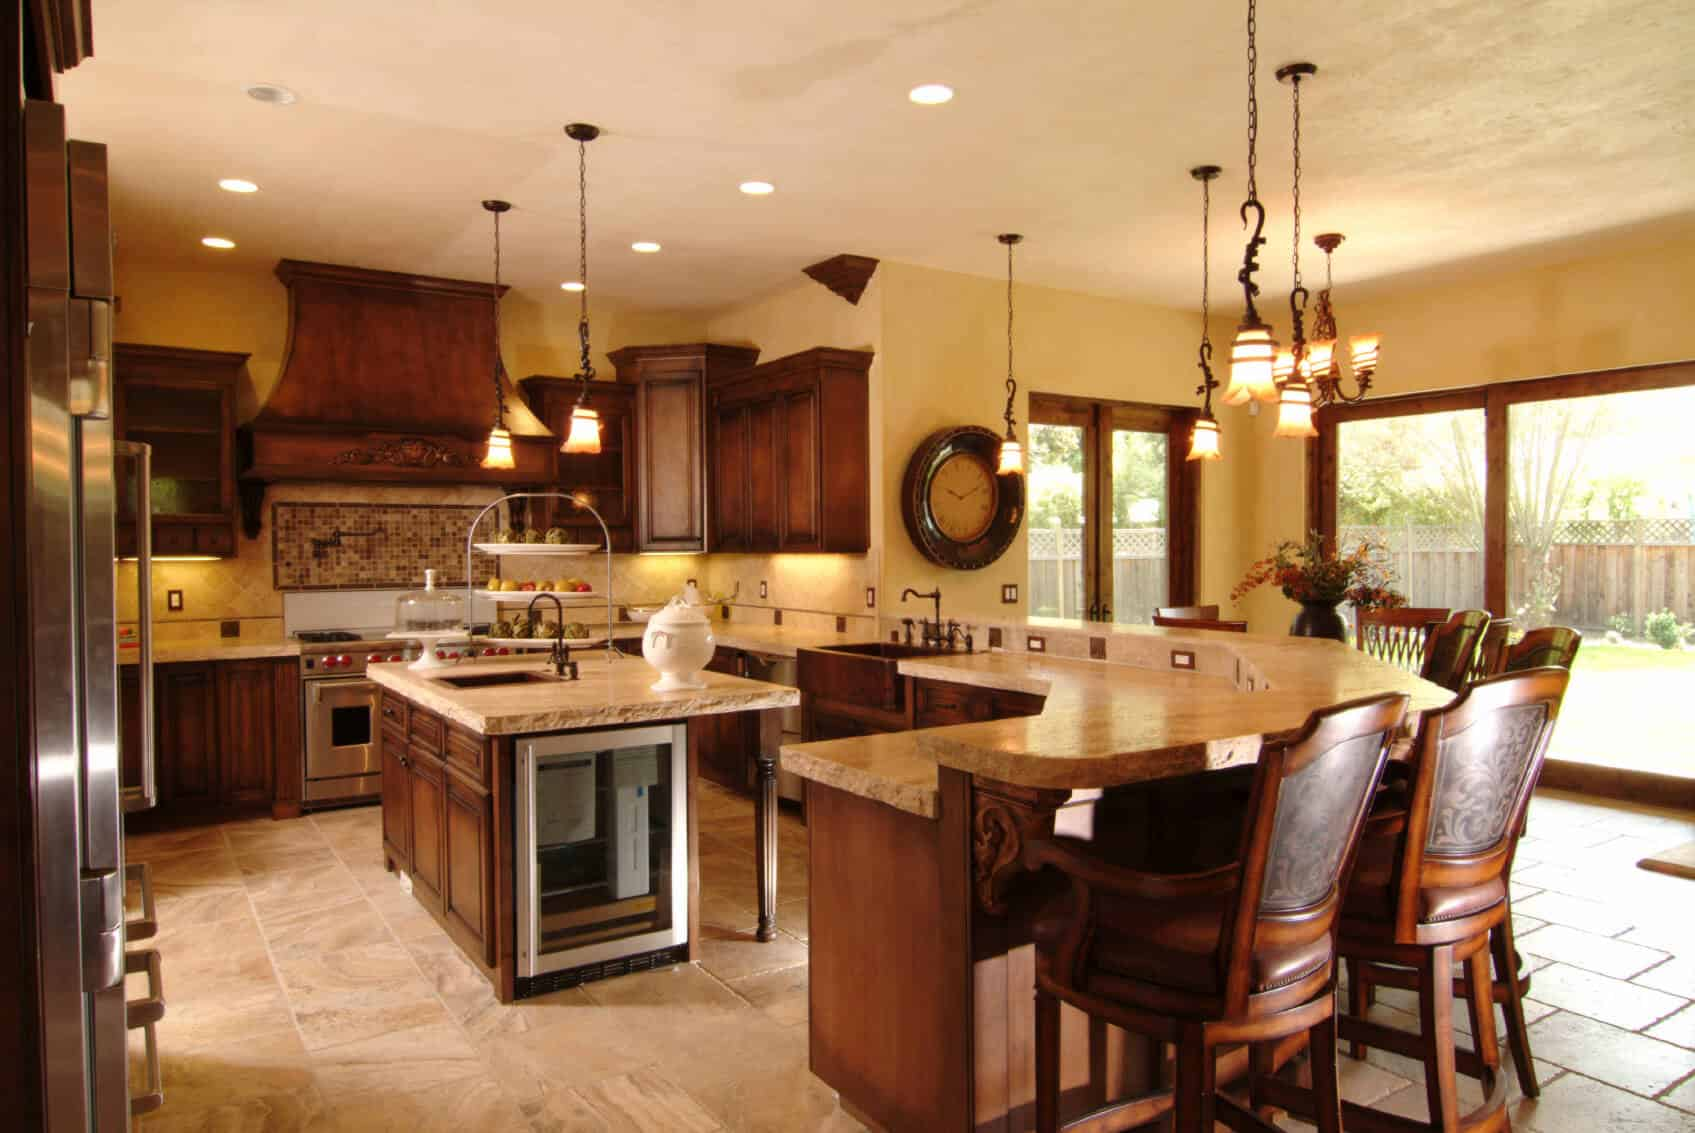 In this kitchen defined by wraparound counter space, modest sized island commands attention with built-in wine cooler and full sink over dark hardwood paneling.